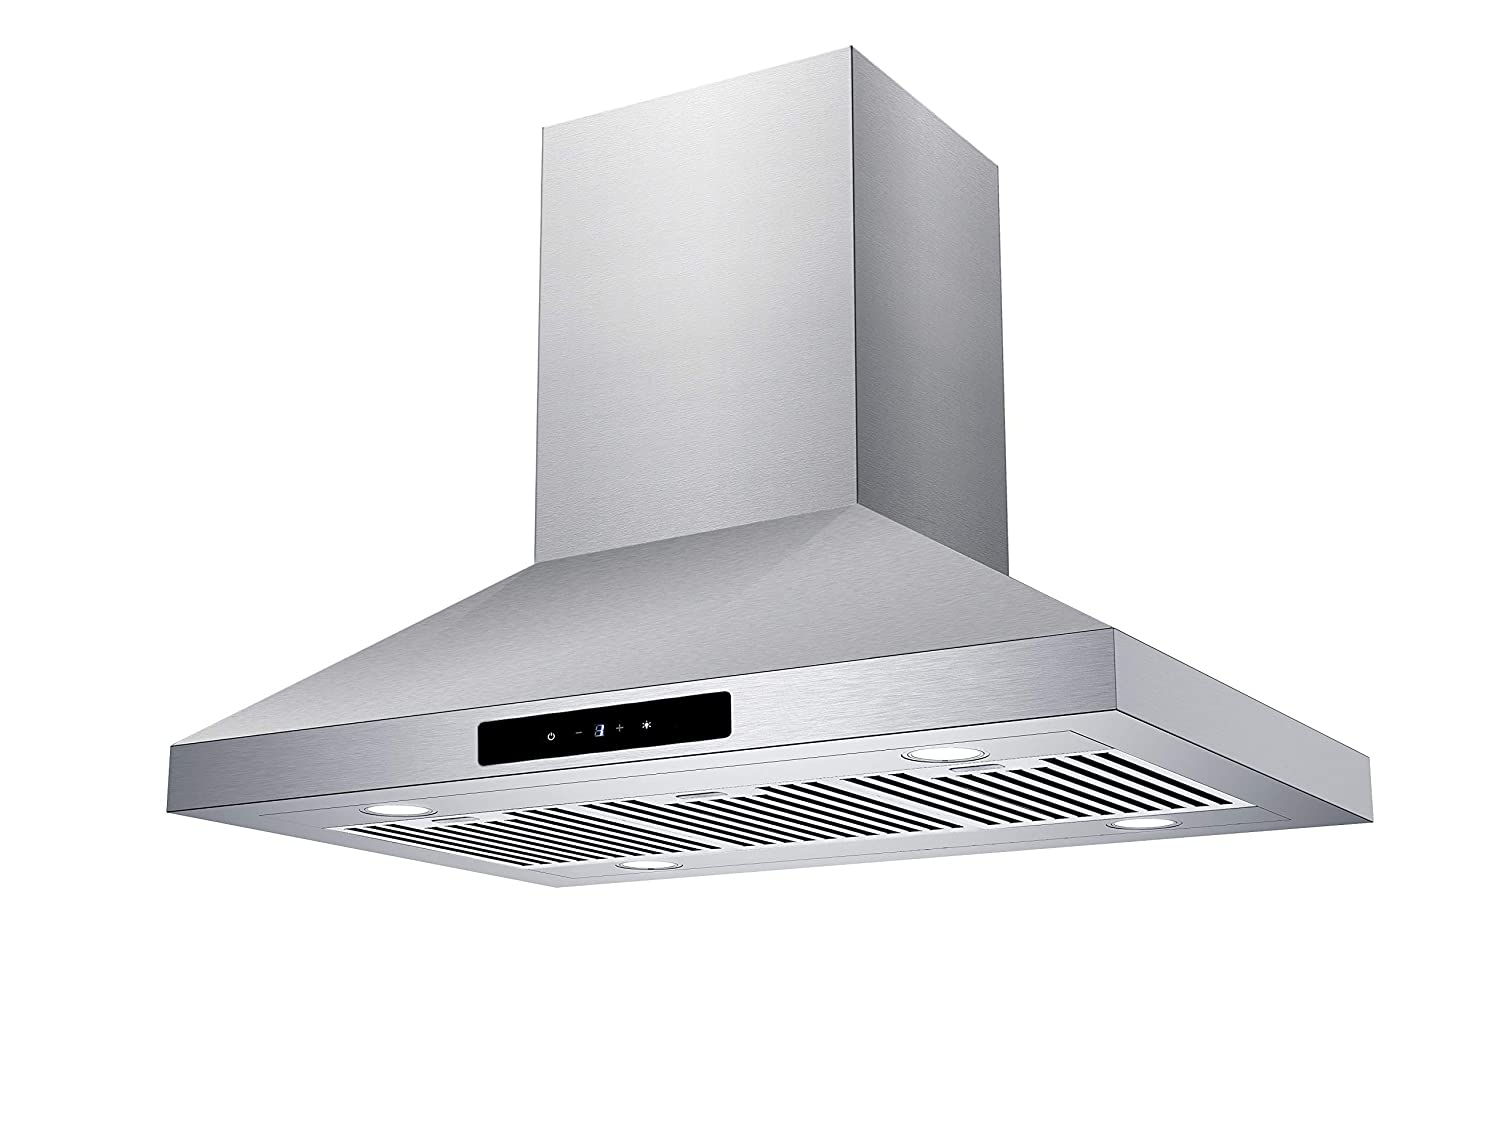 CIARRA 36-in Island-Mount Range Hood Stainless Steel Ducted/Ductless Convertible Duct Chimney Kitchen Stove Hood Vent with Aluminum Baffle Filters 450CFM/LED Lighting